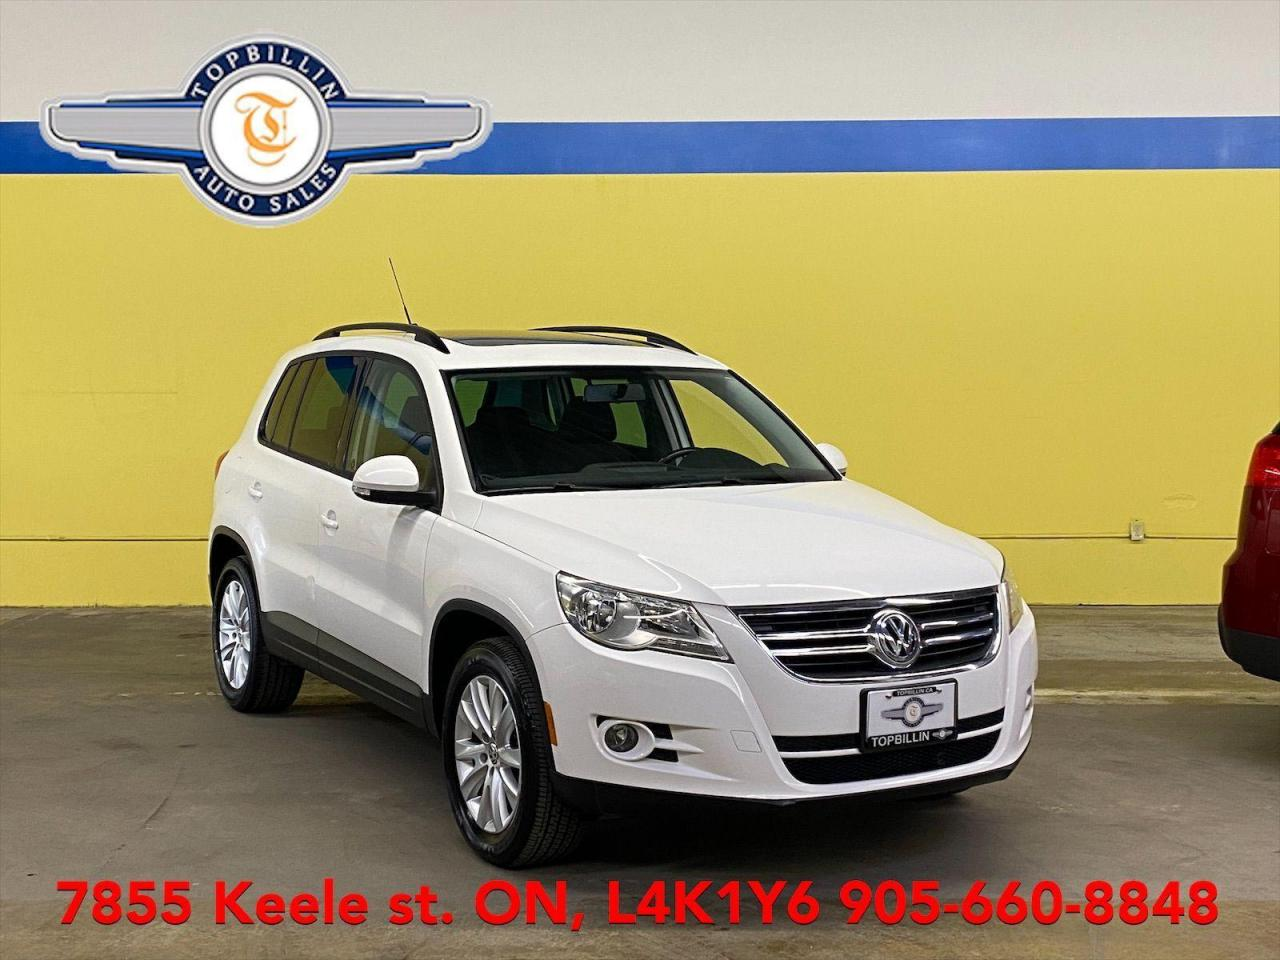 used 2010 volkswagen tiguan 4motion awd, panoramic sunroof for sale in vaughan, ontario carpages.ca